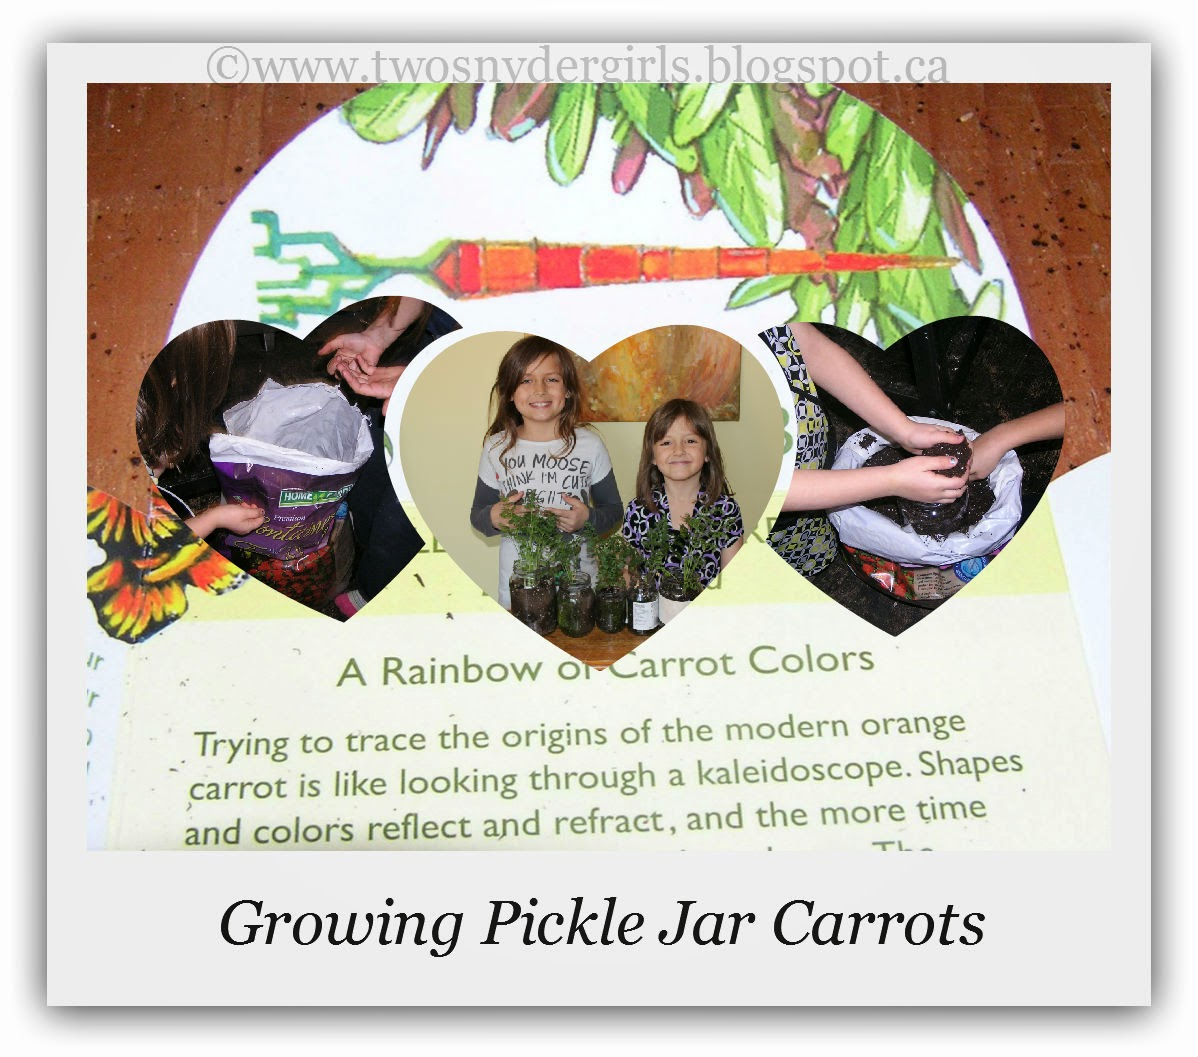 Growing Pickle Jar Carrots